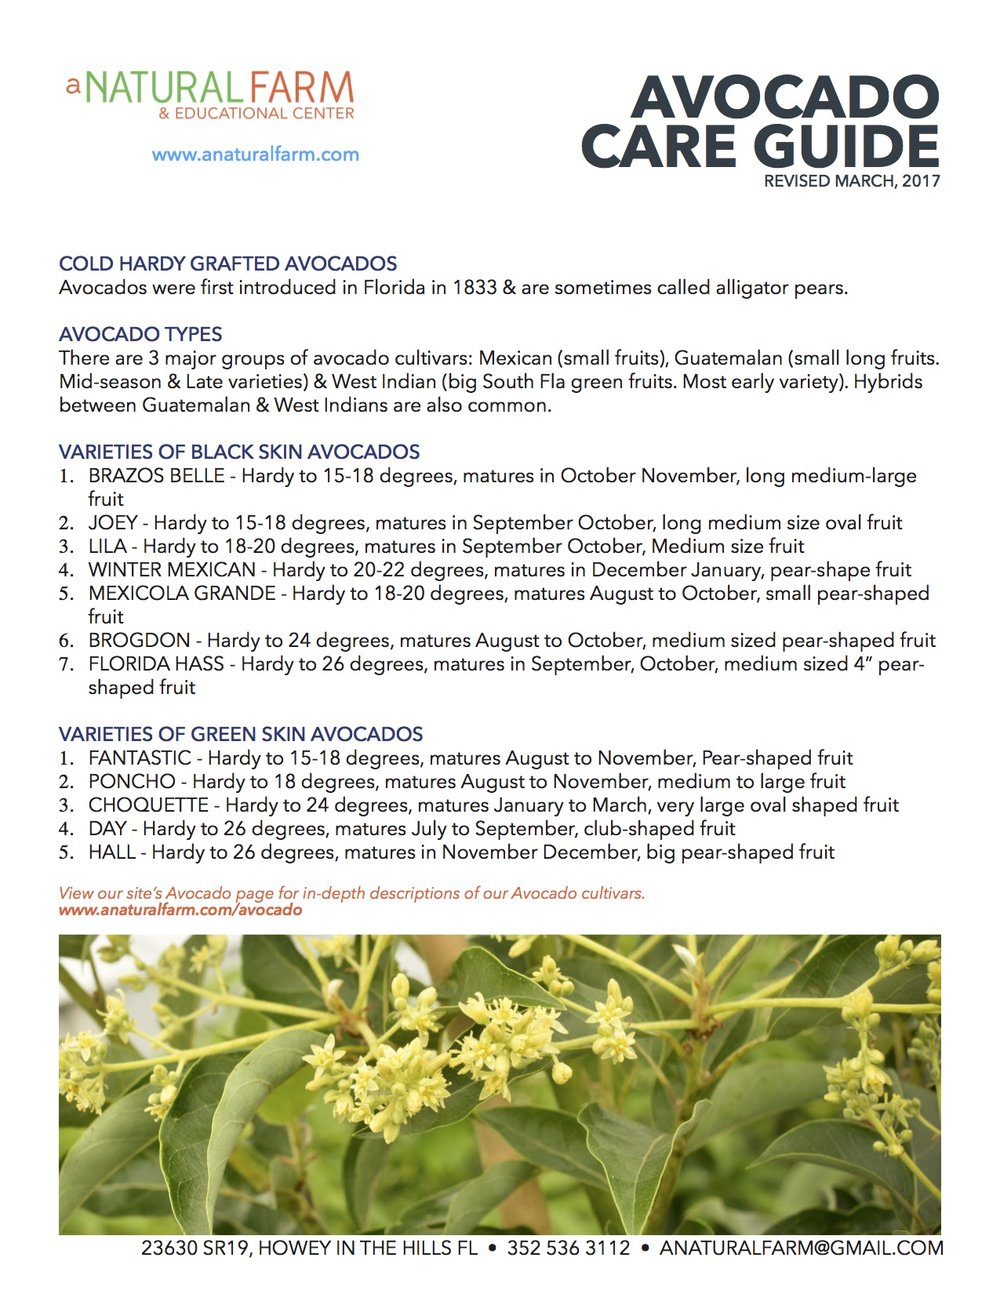 avocado care guide 2017.jpg